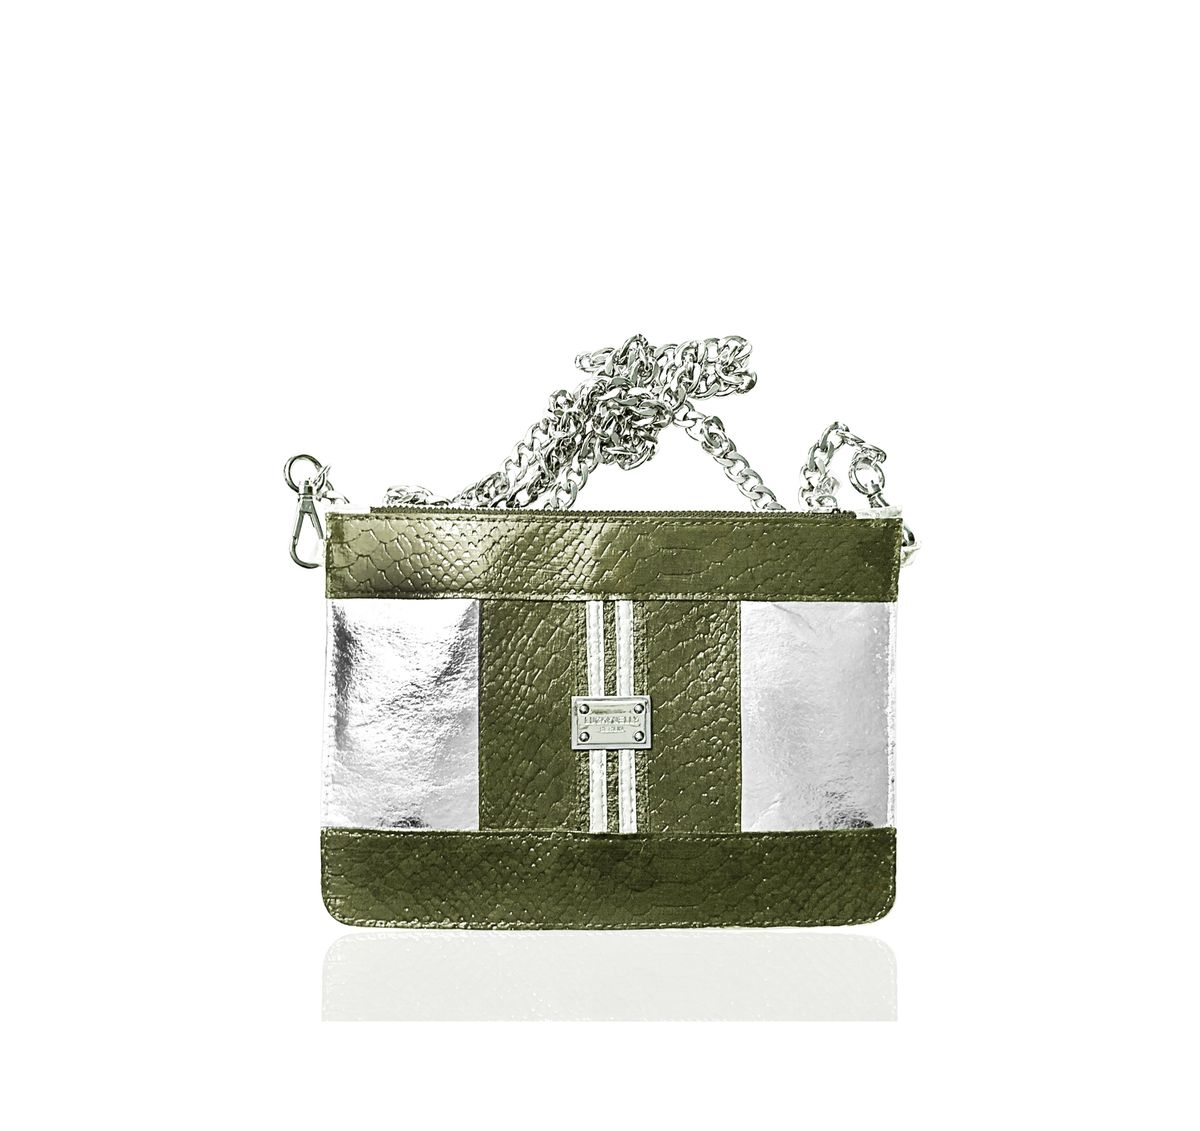 Green_Clutch Kopie_1